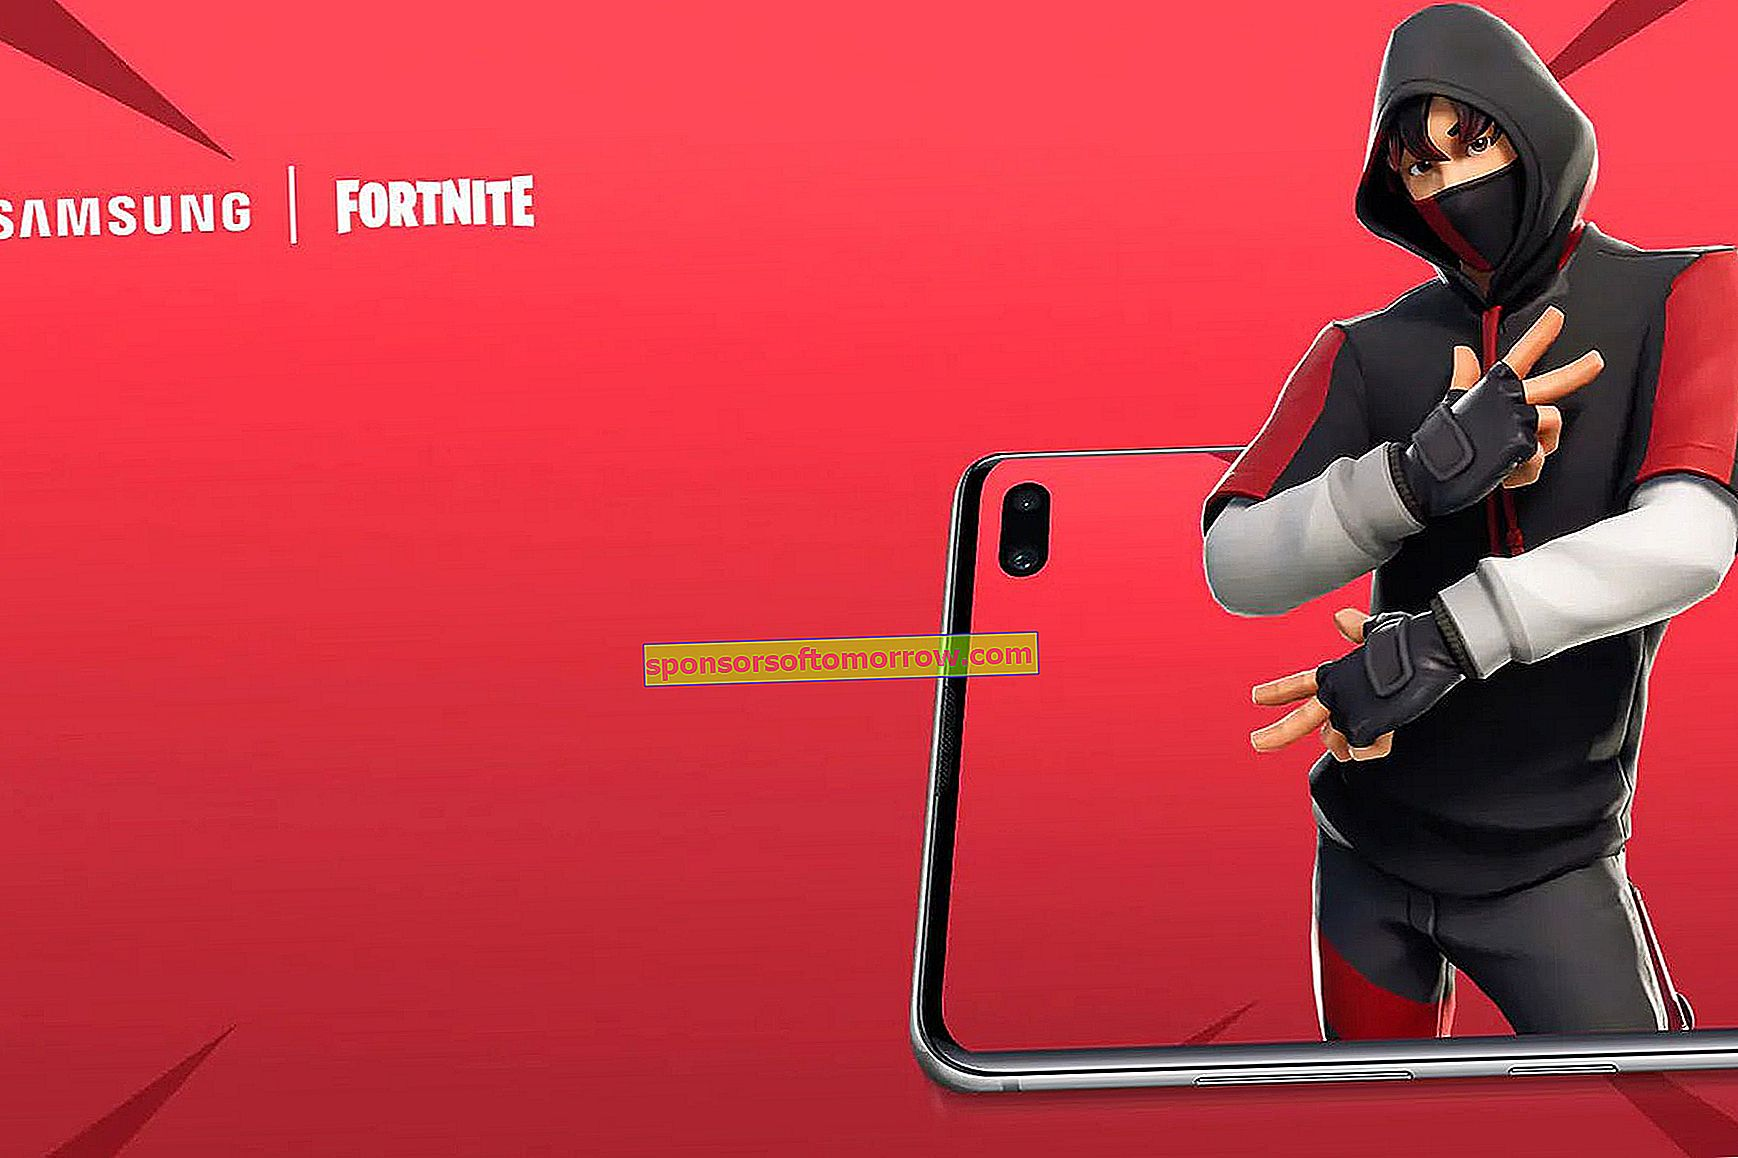 How to get the Fortnite skin of the Samsung Galaxy S10 +